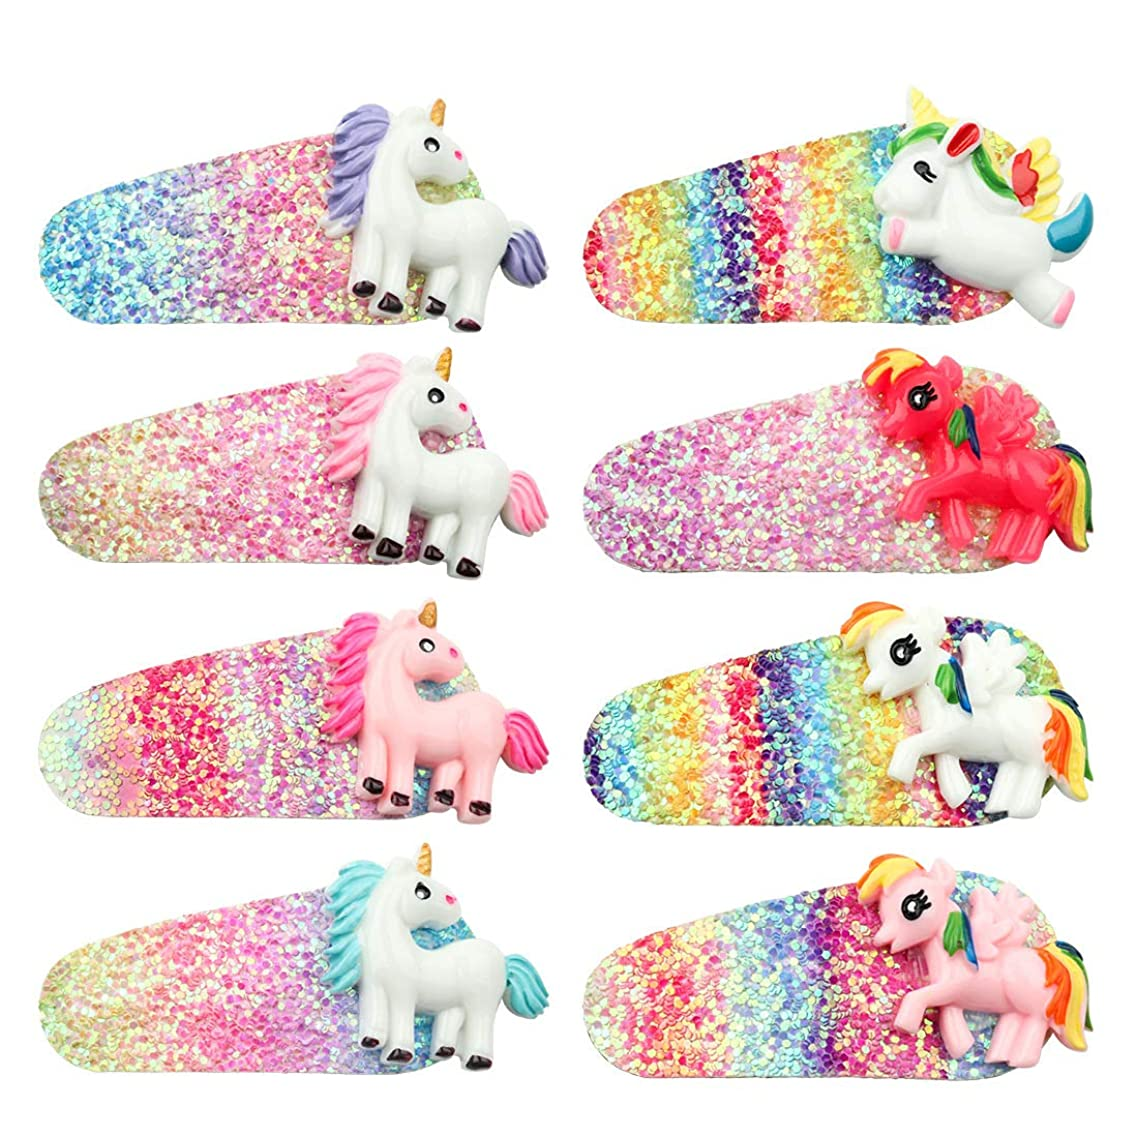 8 Pack Mini Rainbow Unicorn Hair Clips Sequin Unicorn Hair Accessories- Perfect for Daily Wearing, Party Decoration, Birthday, Christmas, Halloween